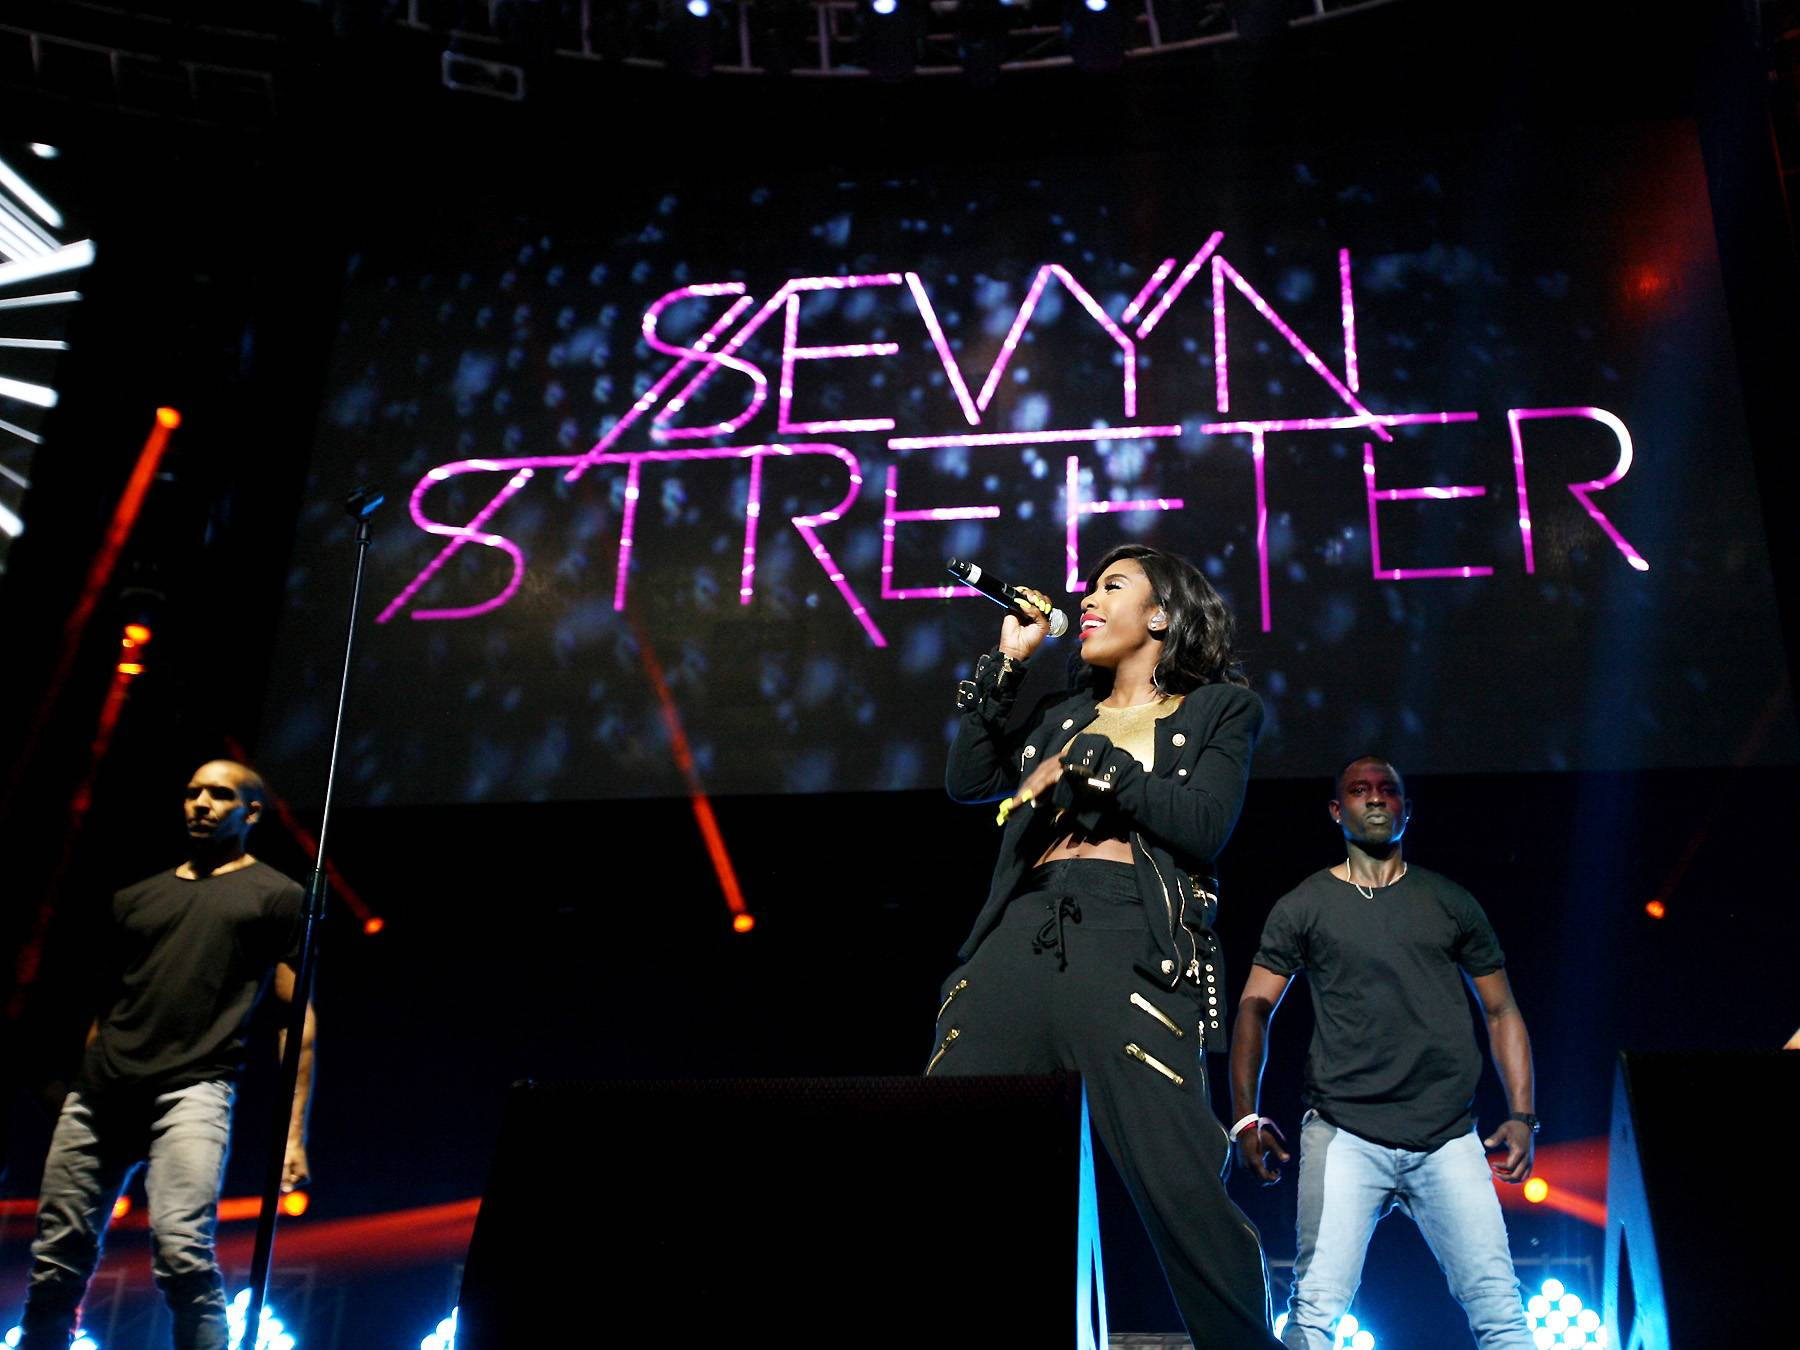 Front and Center - Singer/songwriter Sevyn Streeter's hypnotic vocals took center stage at the BET Experience. (Photo: Maury Phillips/BET/Getty Images for BET)